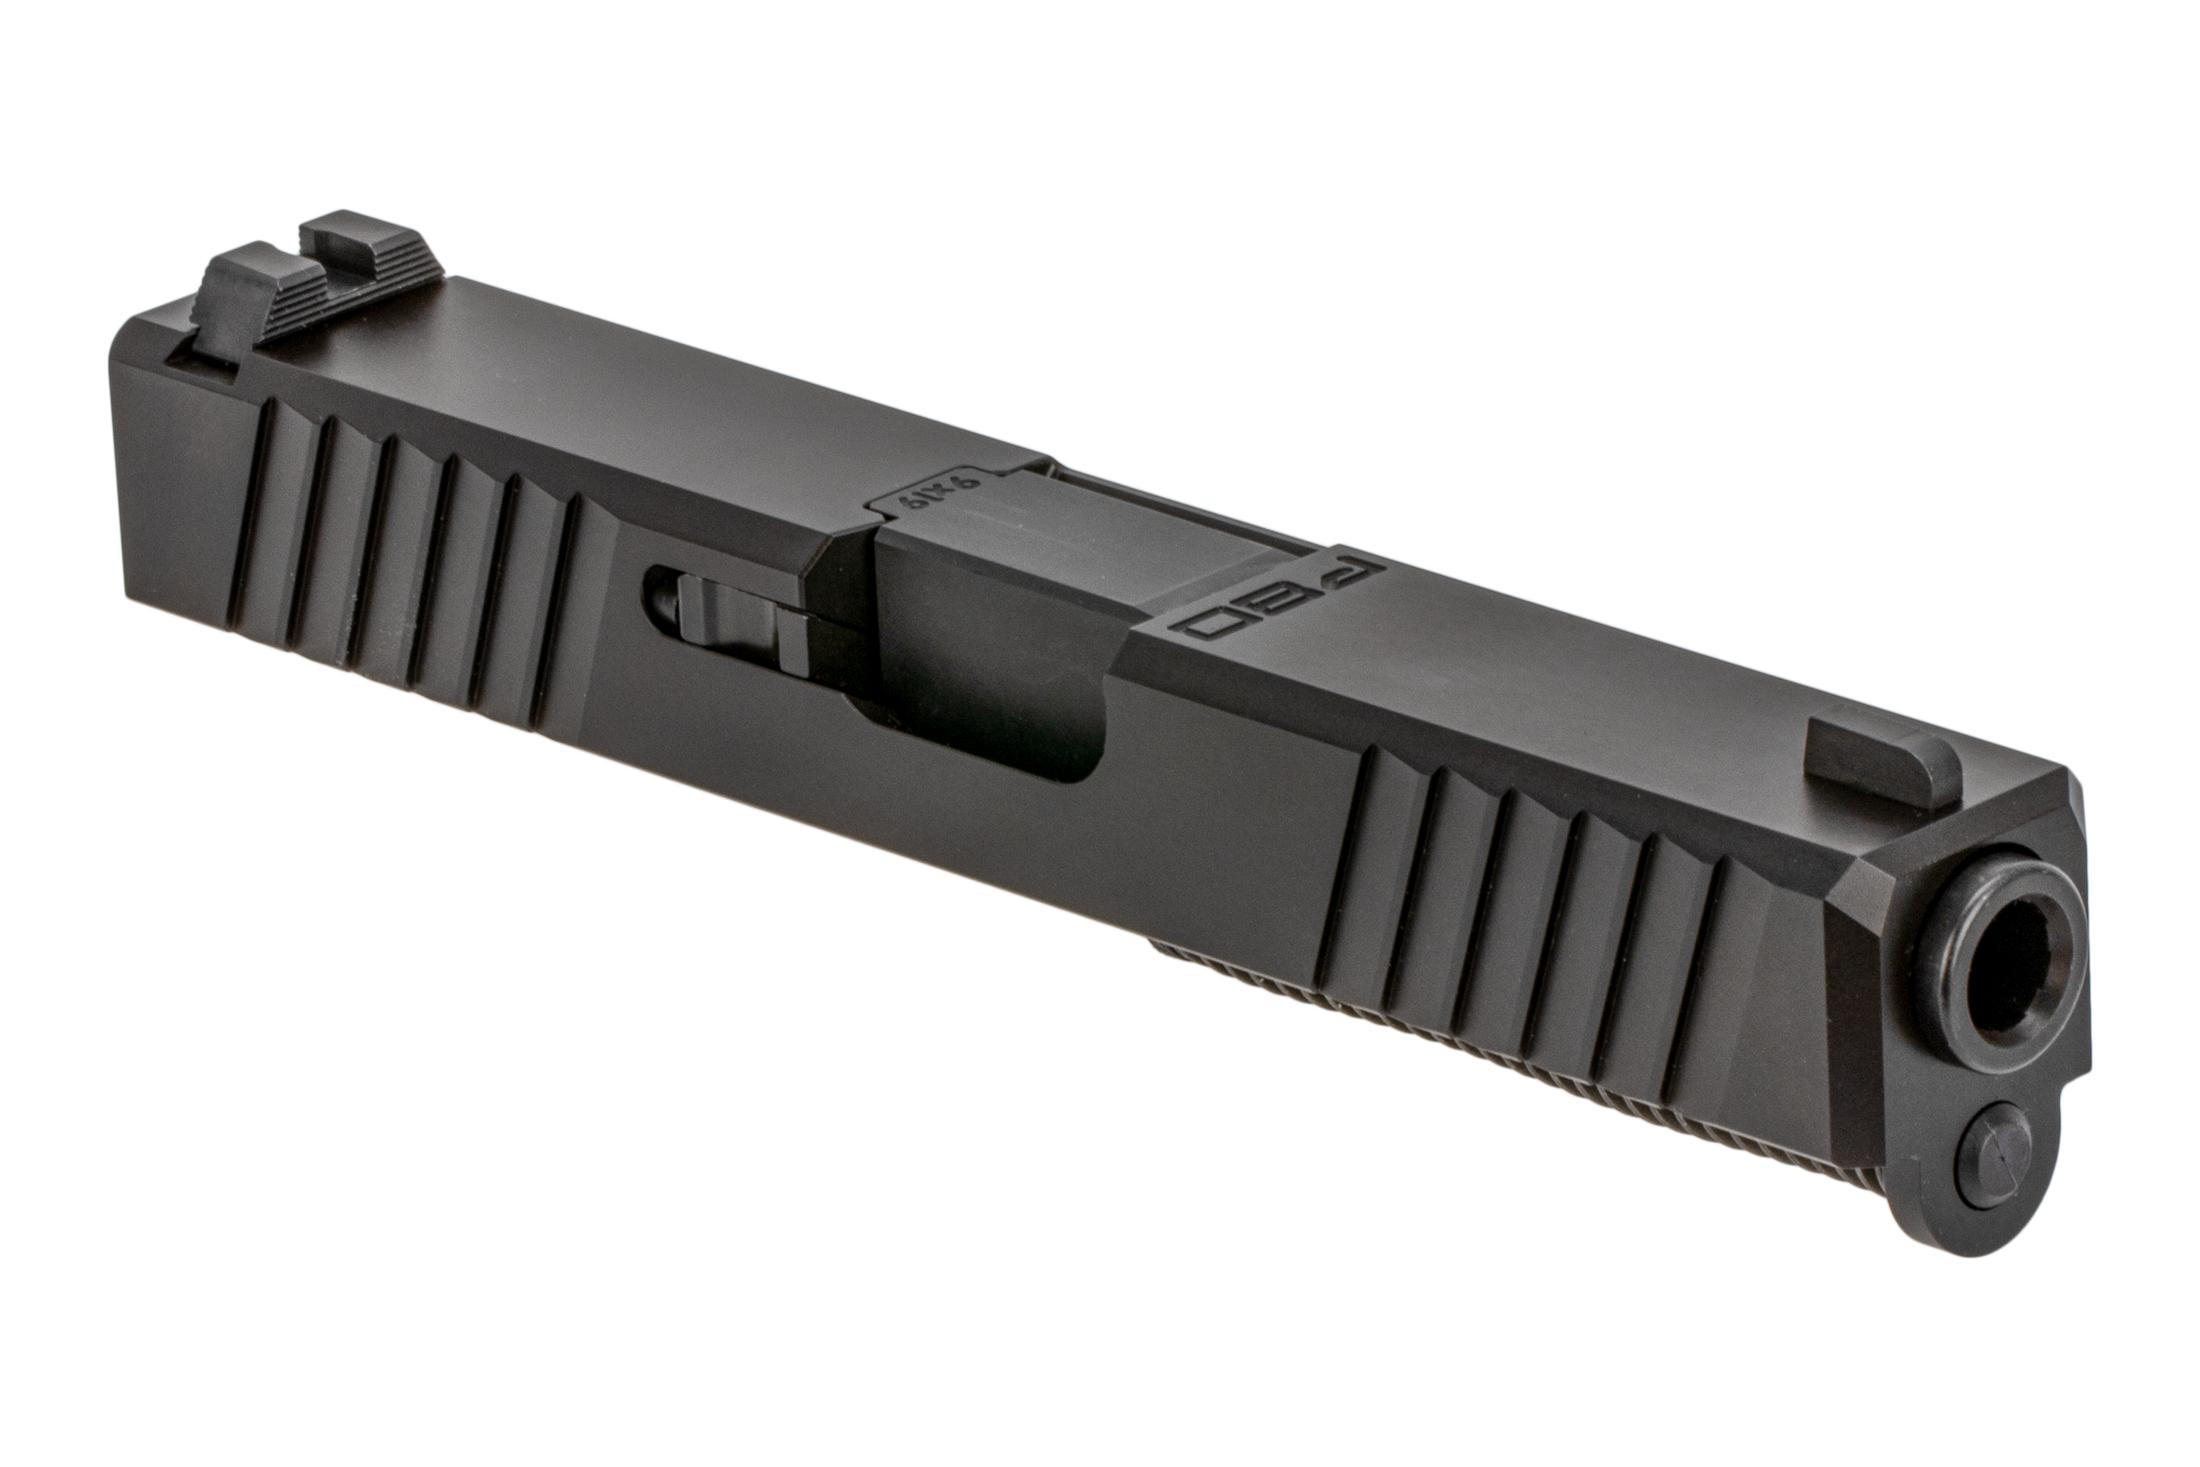 The Polymer 80 G19 slide assembly comes with all parts installed